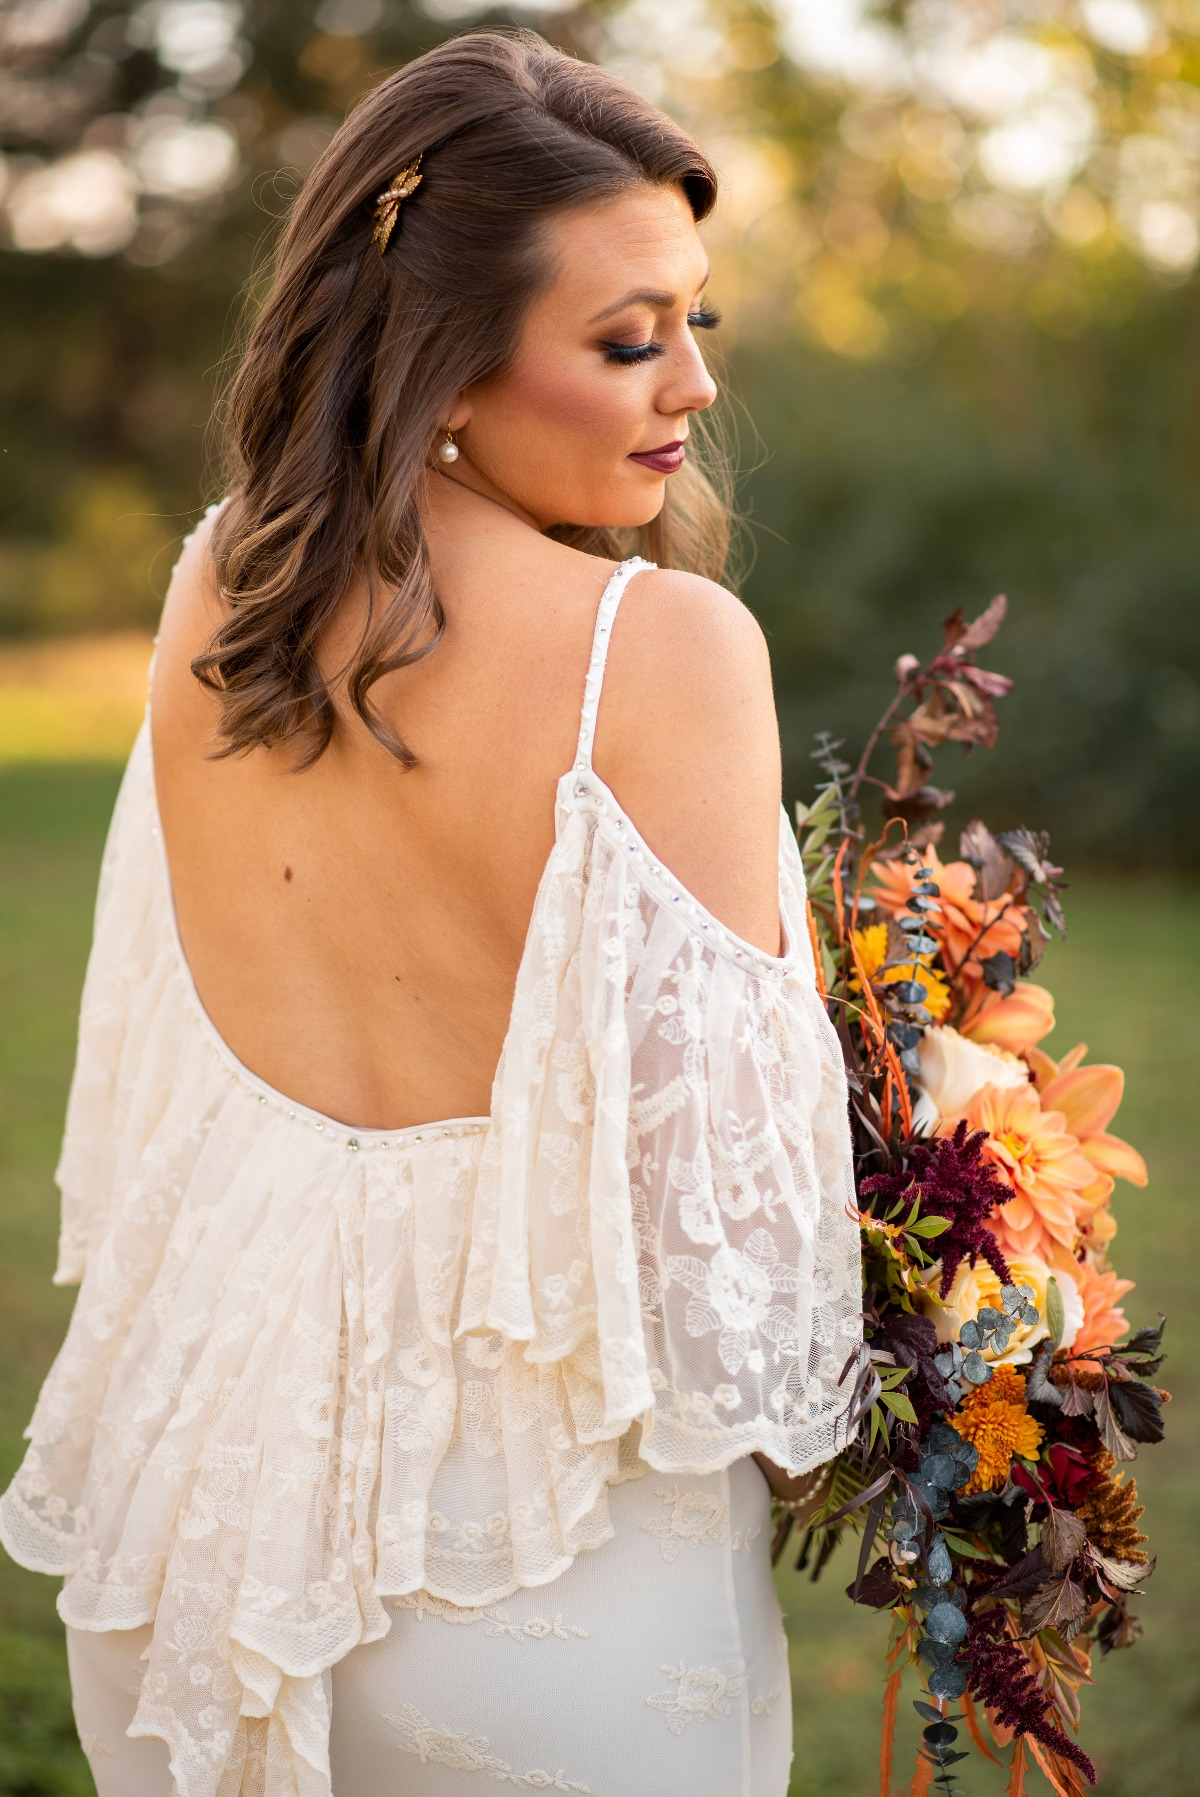 Lace boho wedding dress from Miss Madison Couture Boutique